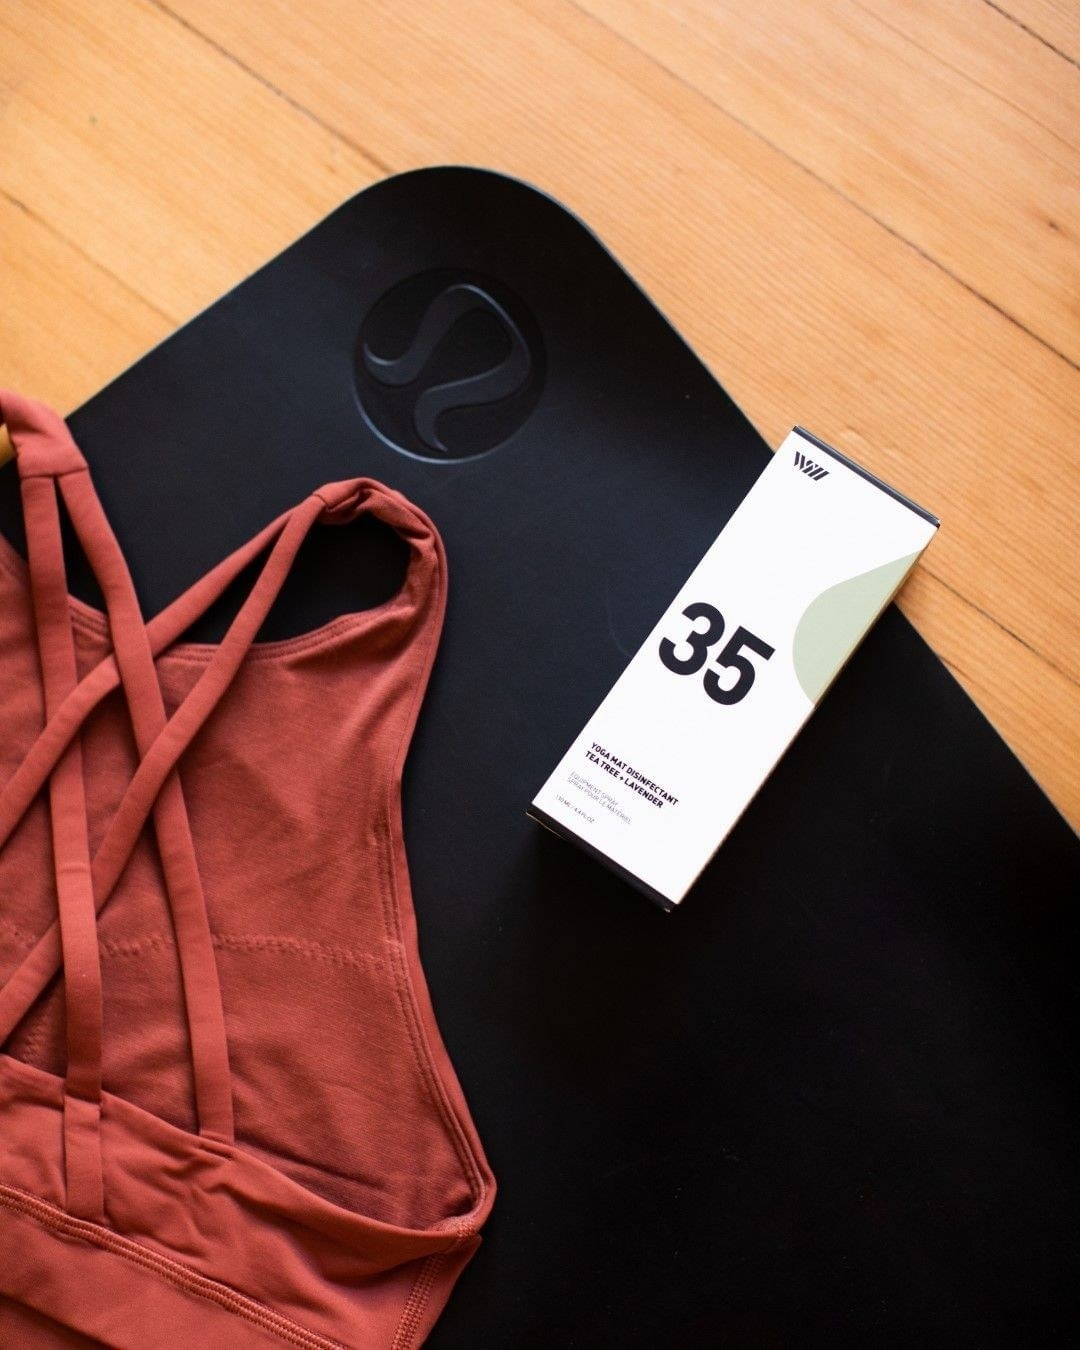 The mat spray lies on a yoga mat next to a discarded sports bra